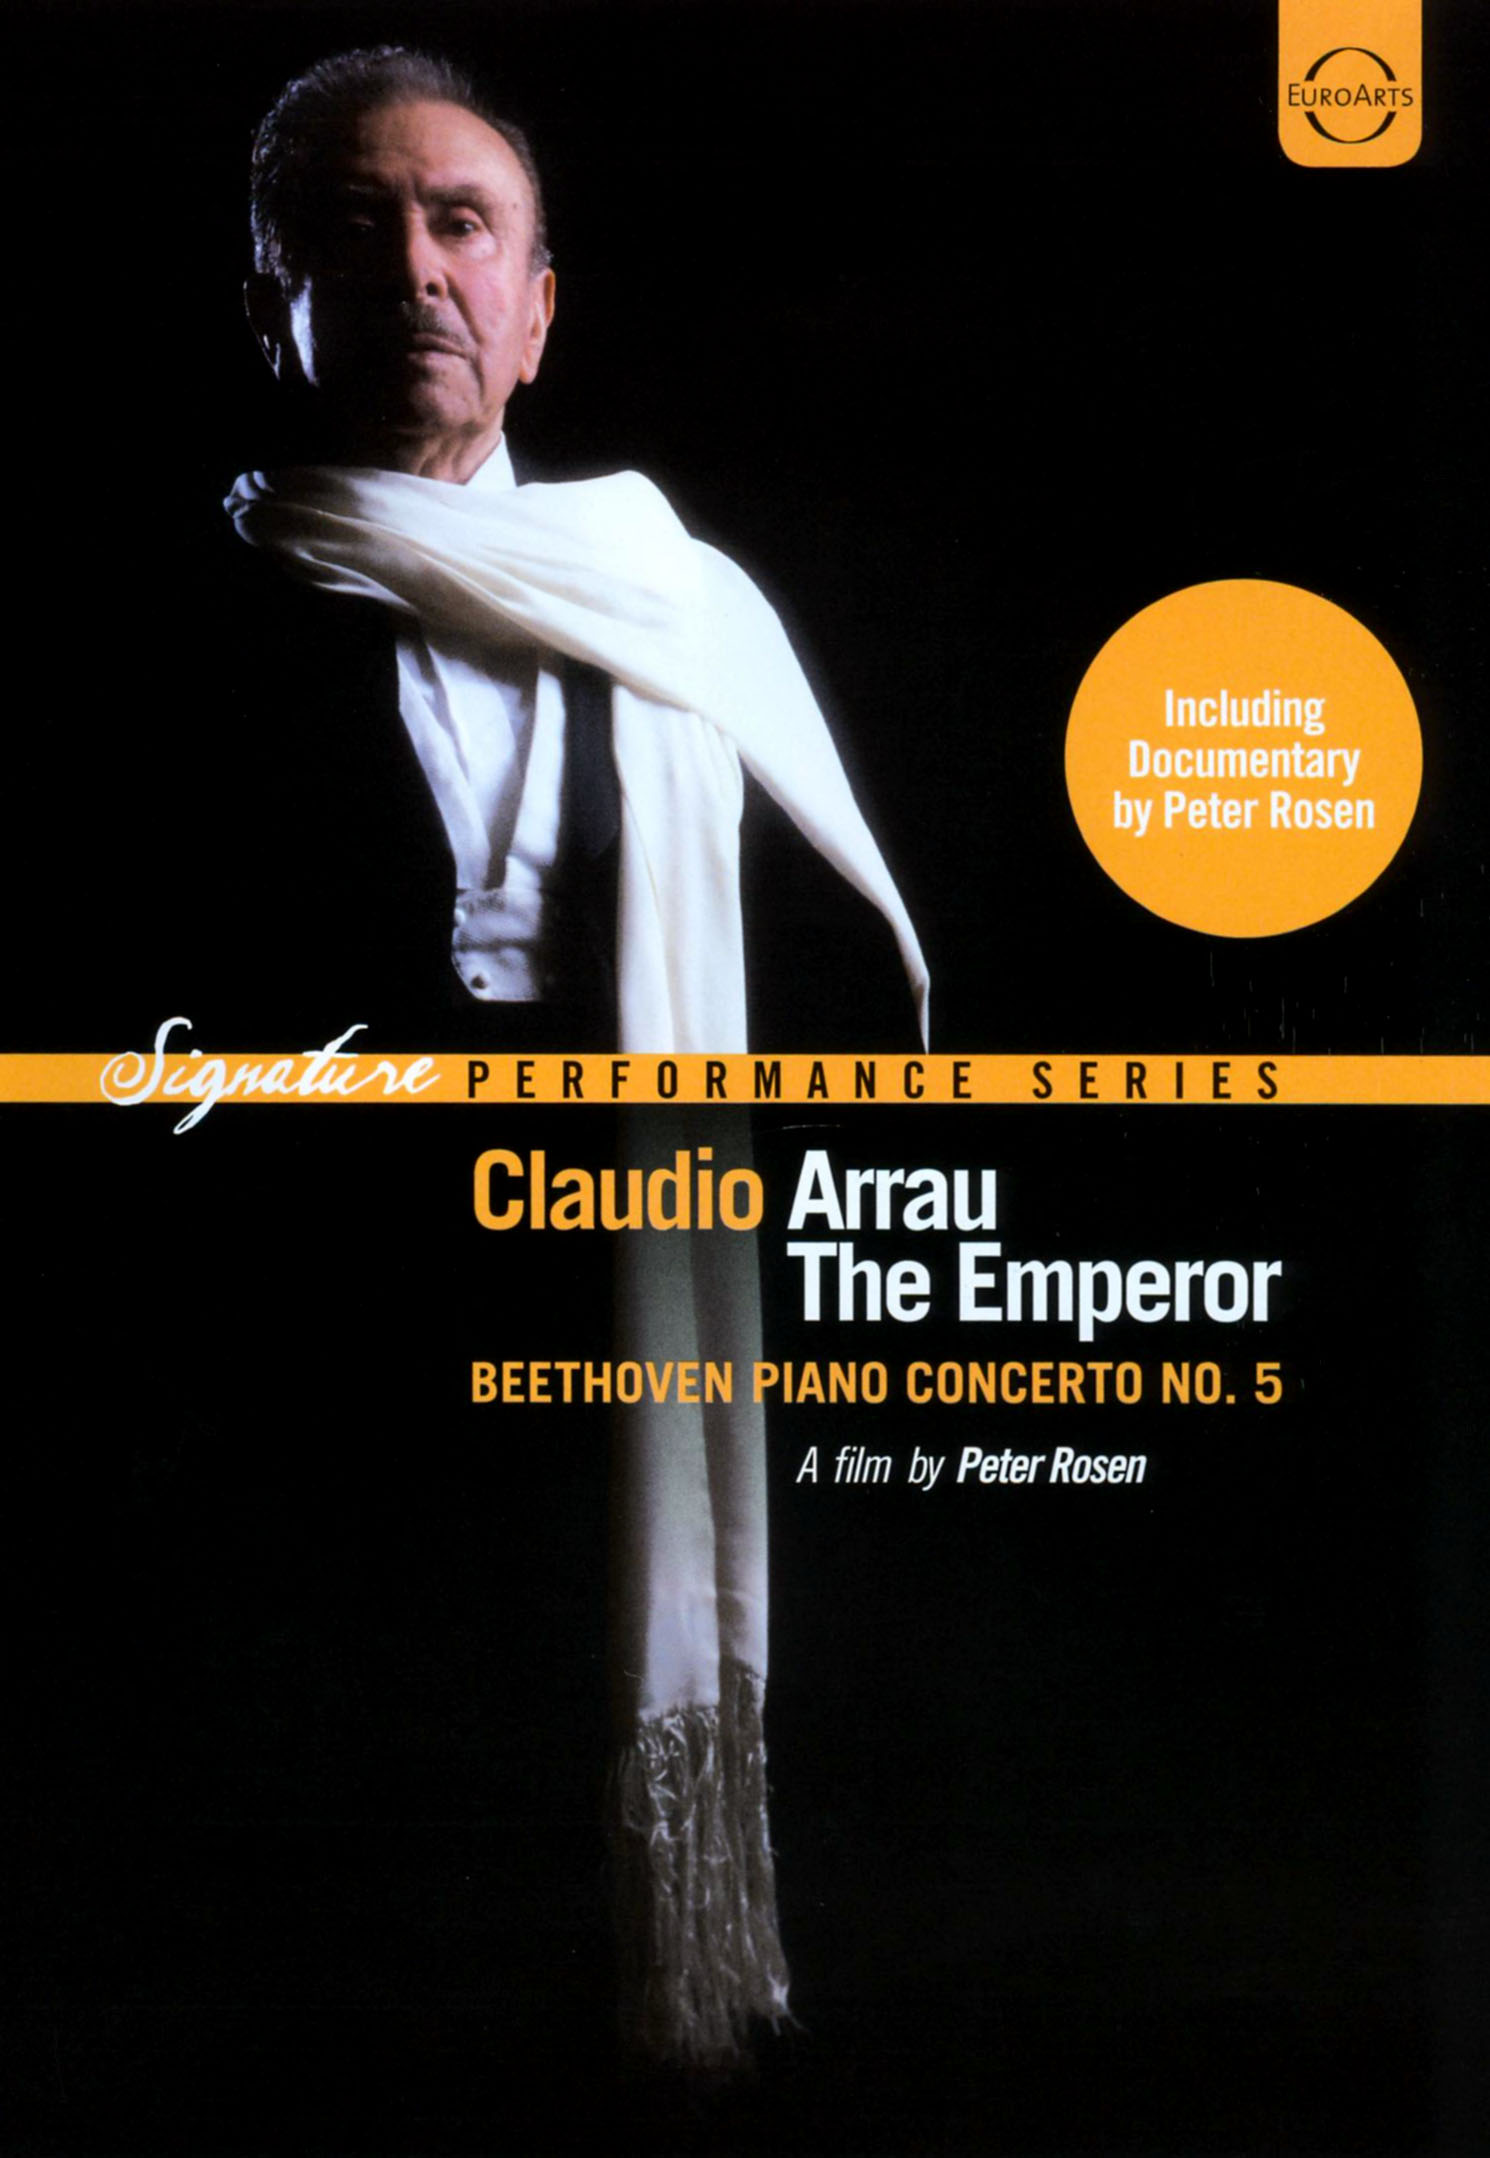 Claudio Arrau: The Emperor